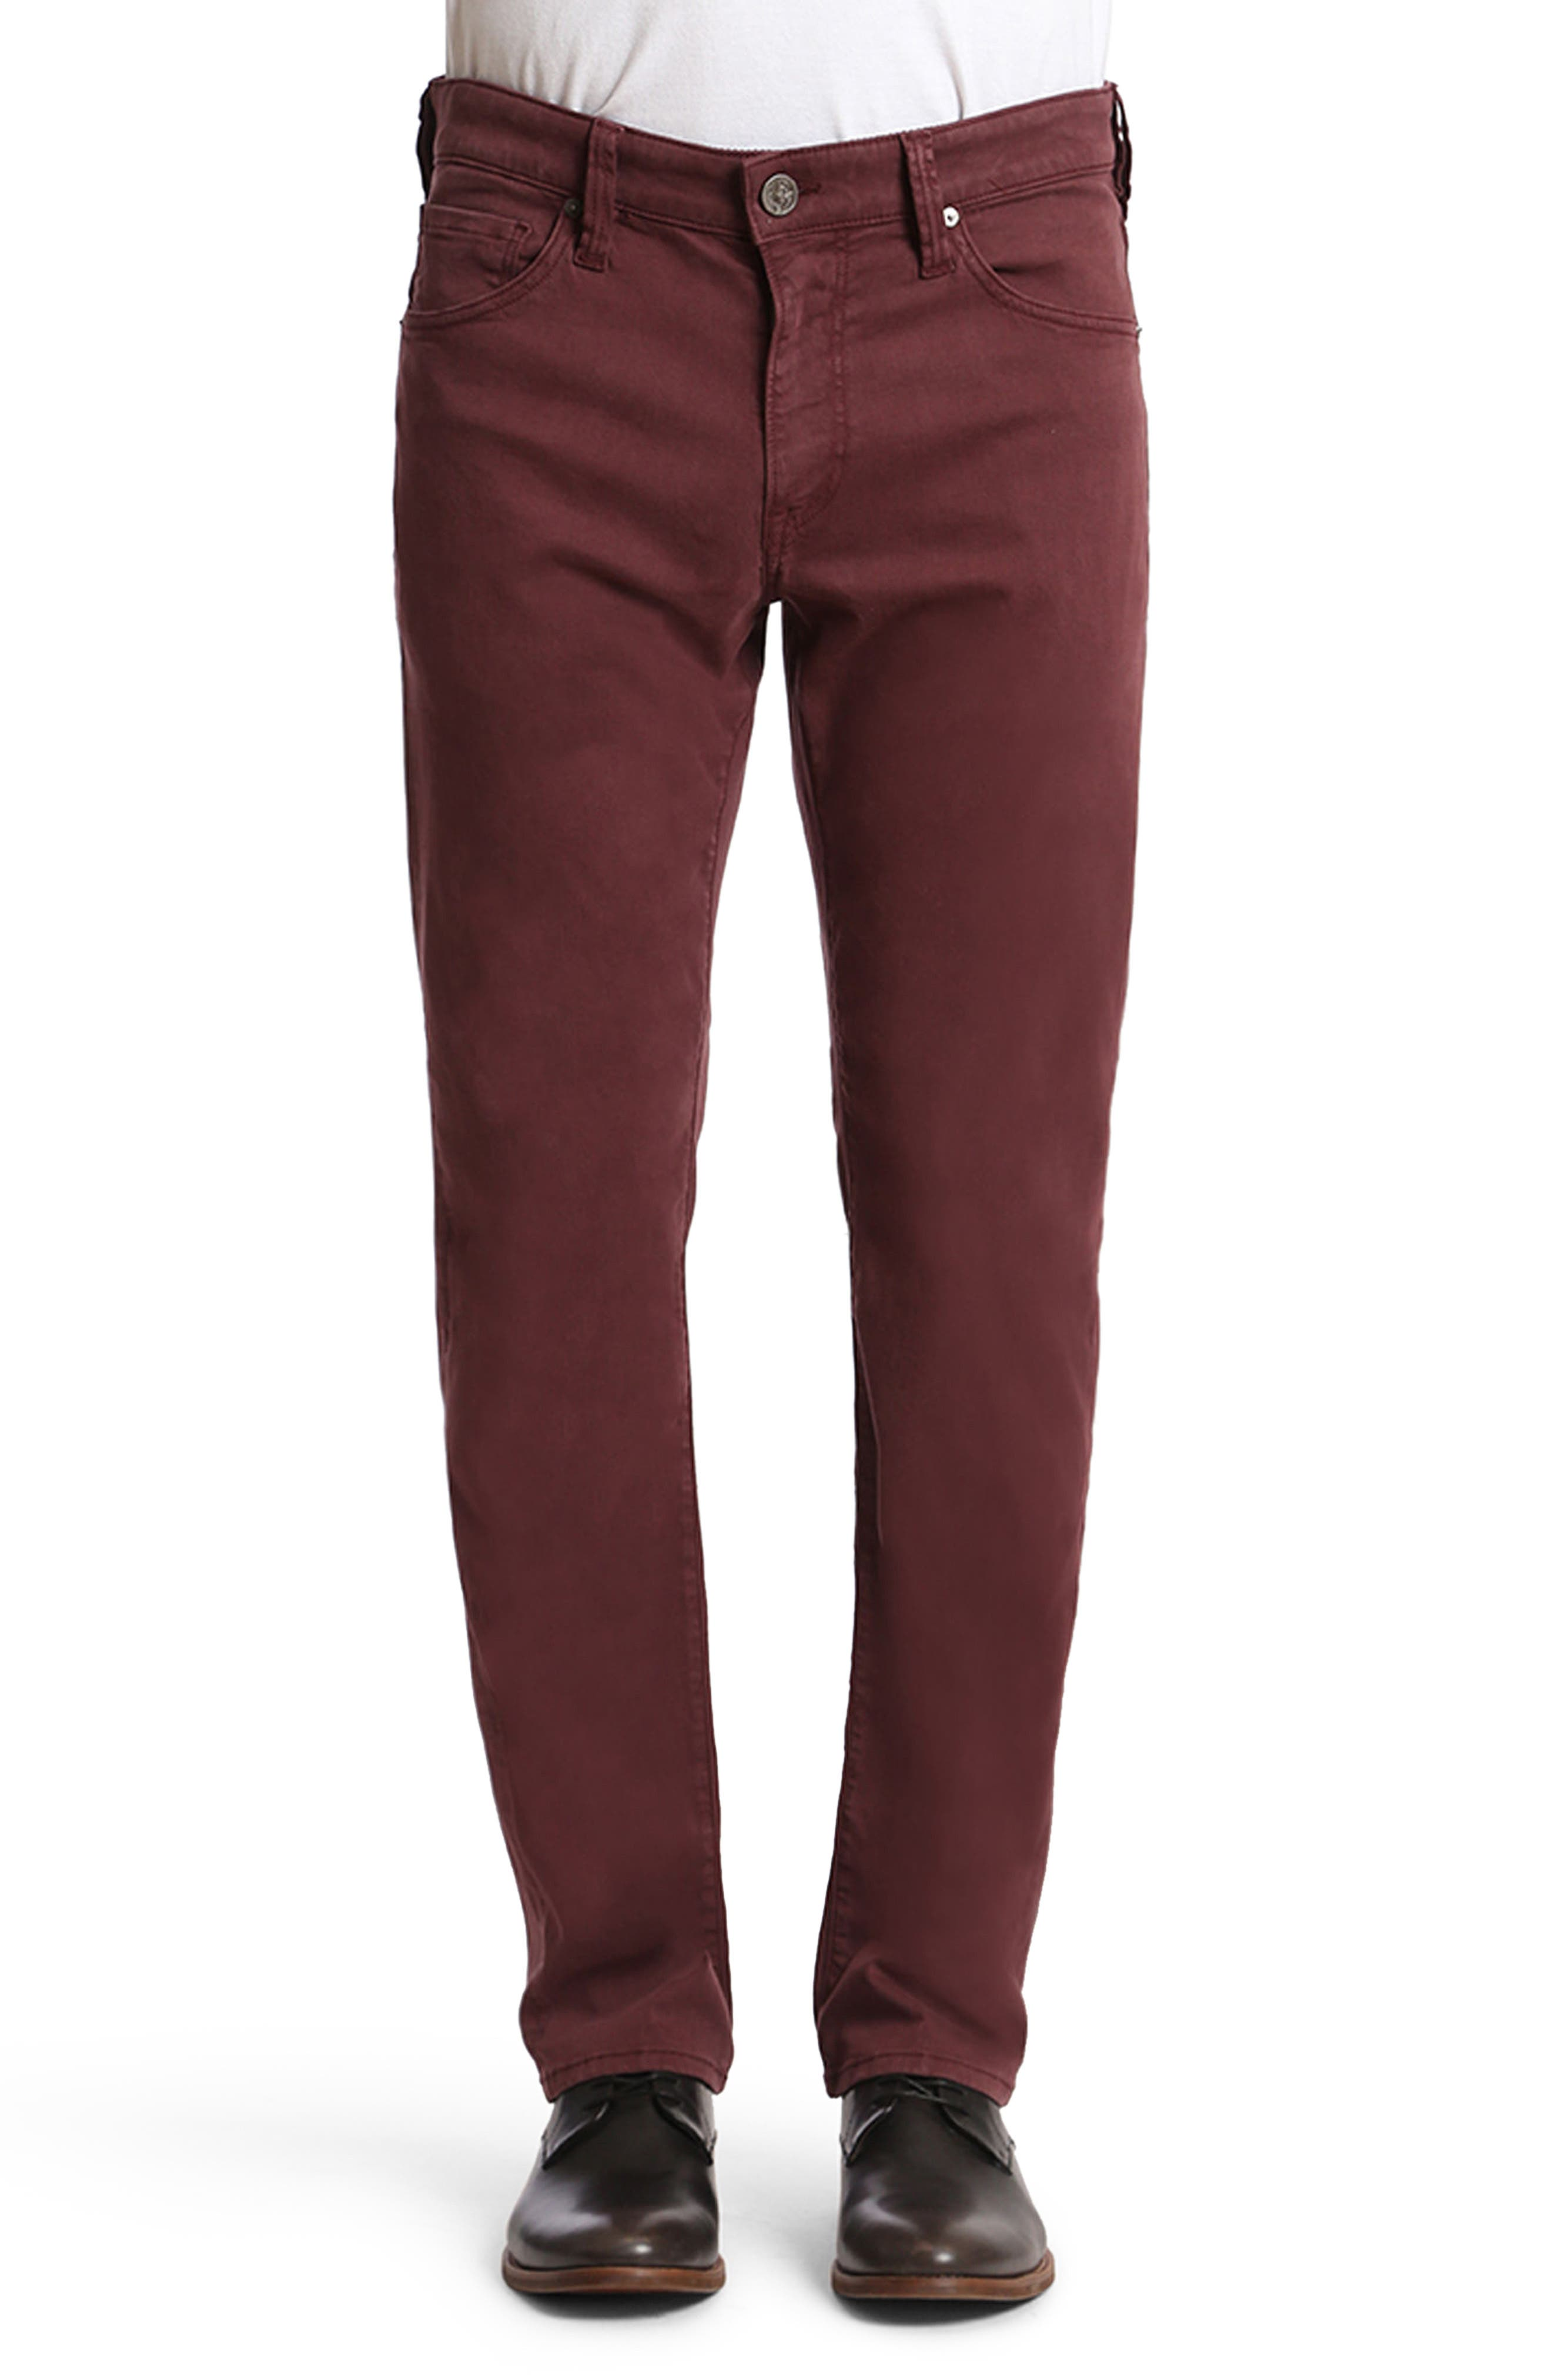 Courage Straight Leg Twill Pants,                             Main thumbnail 1, color,                             Bordeaux Twill